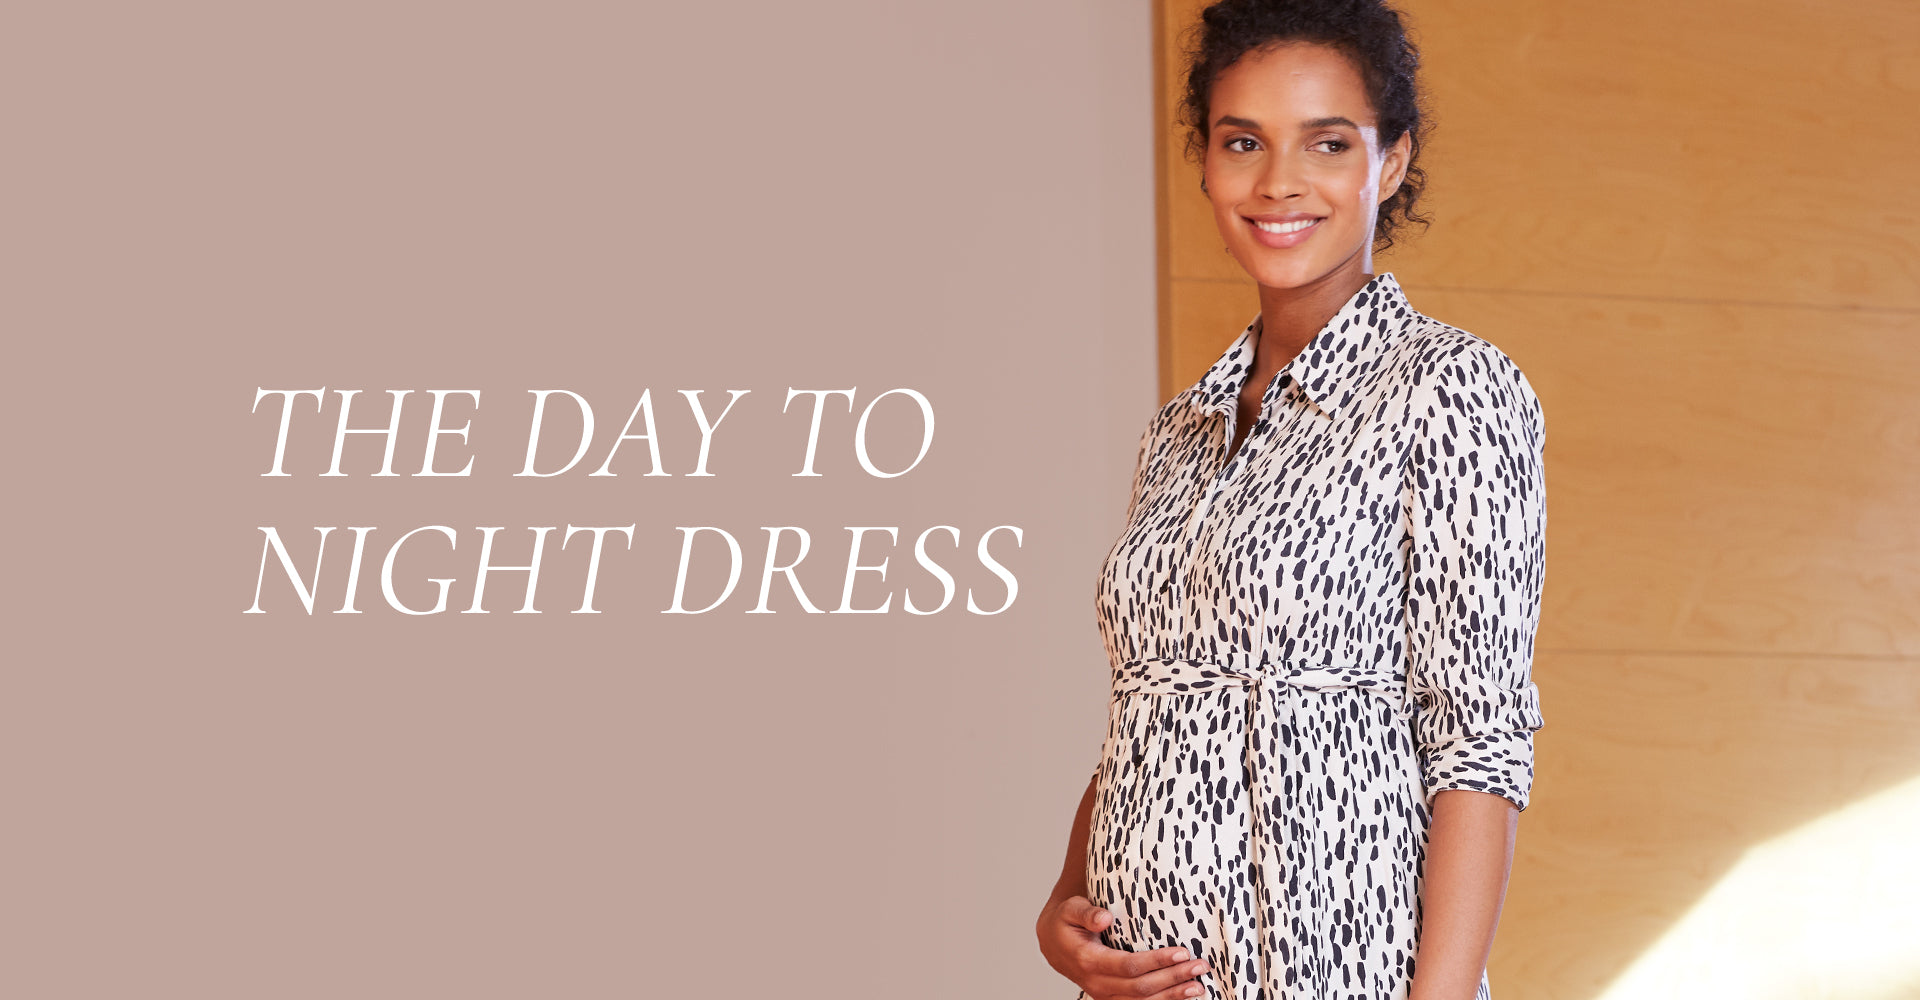 The day to night dress